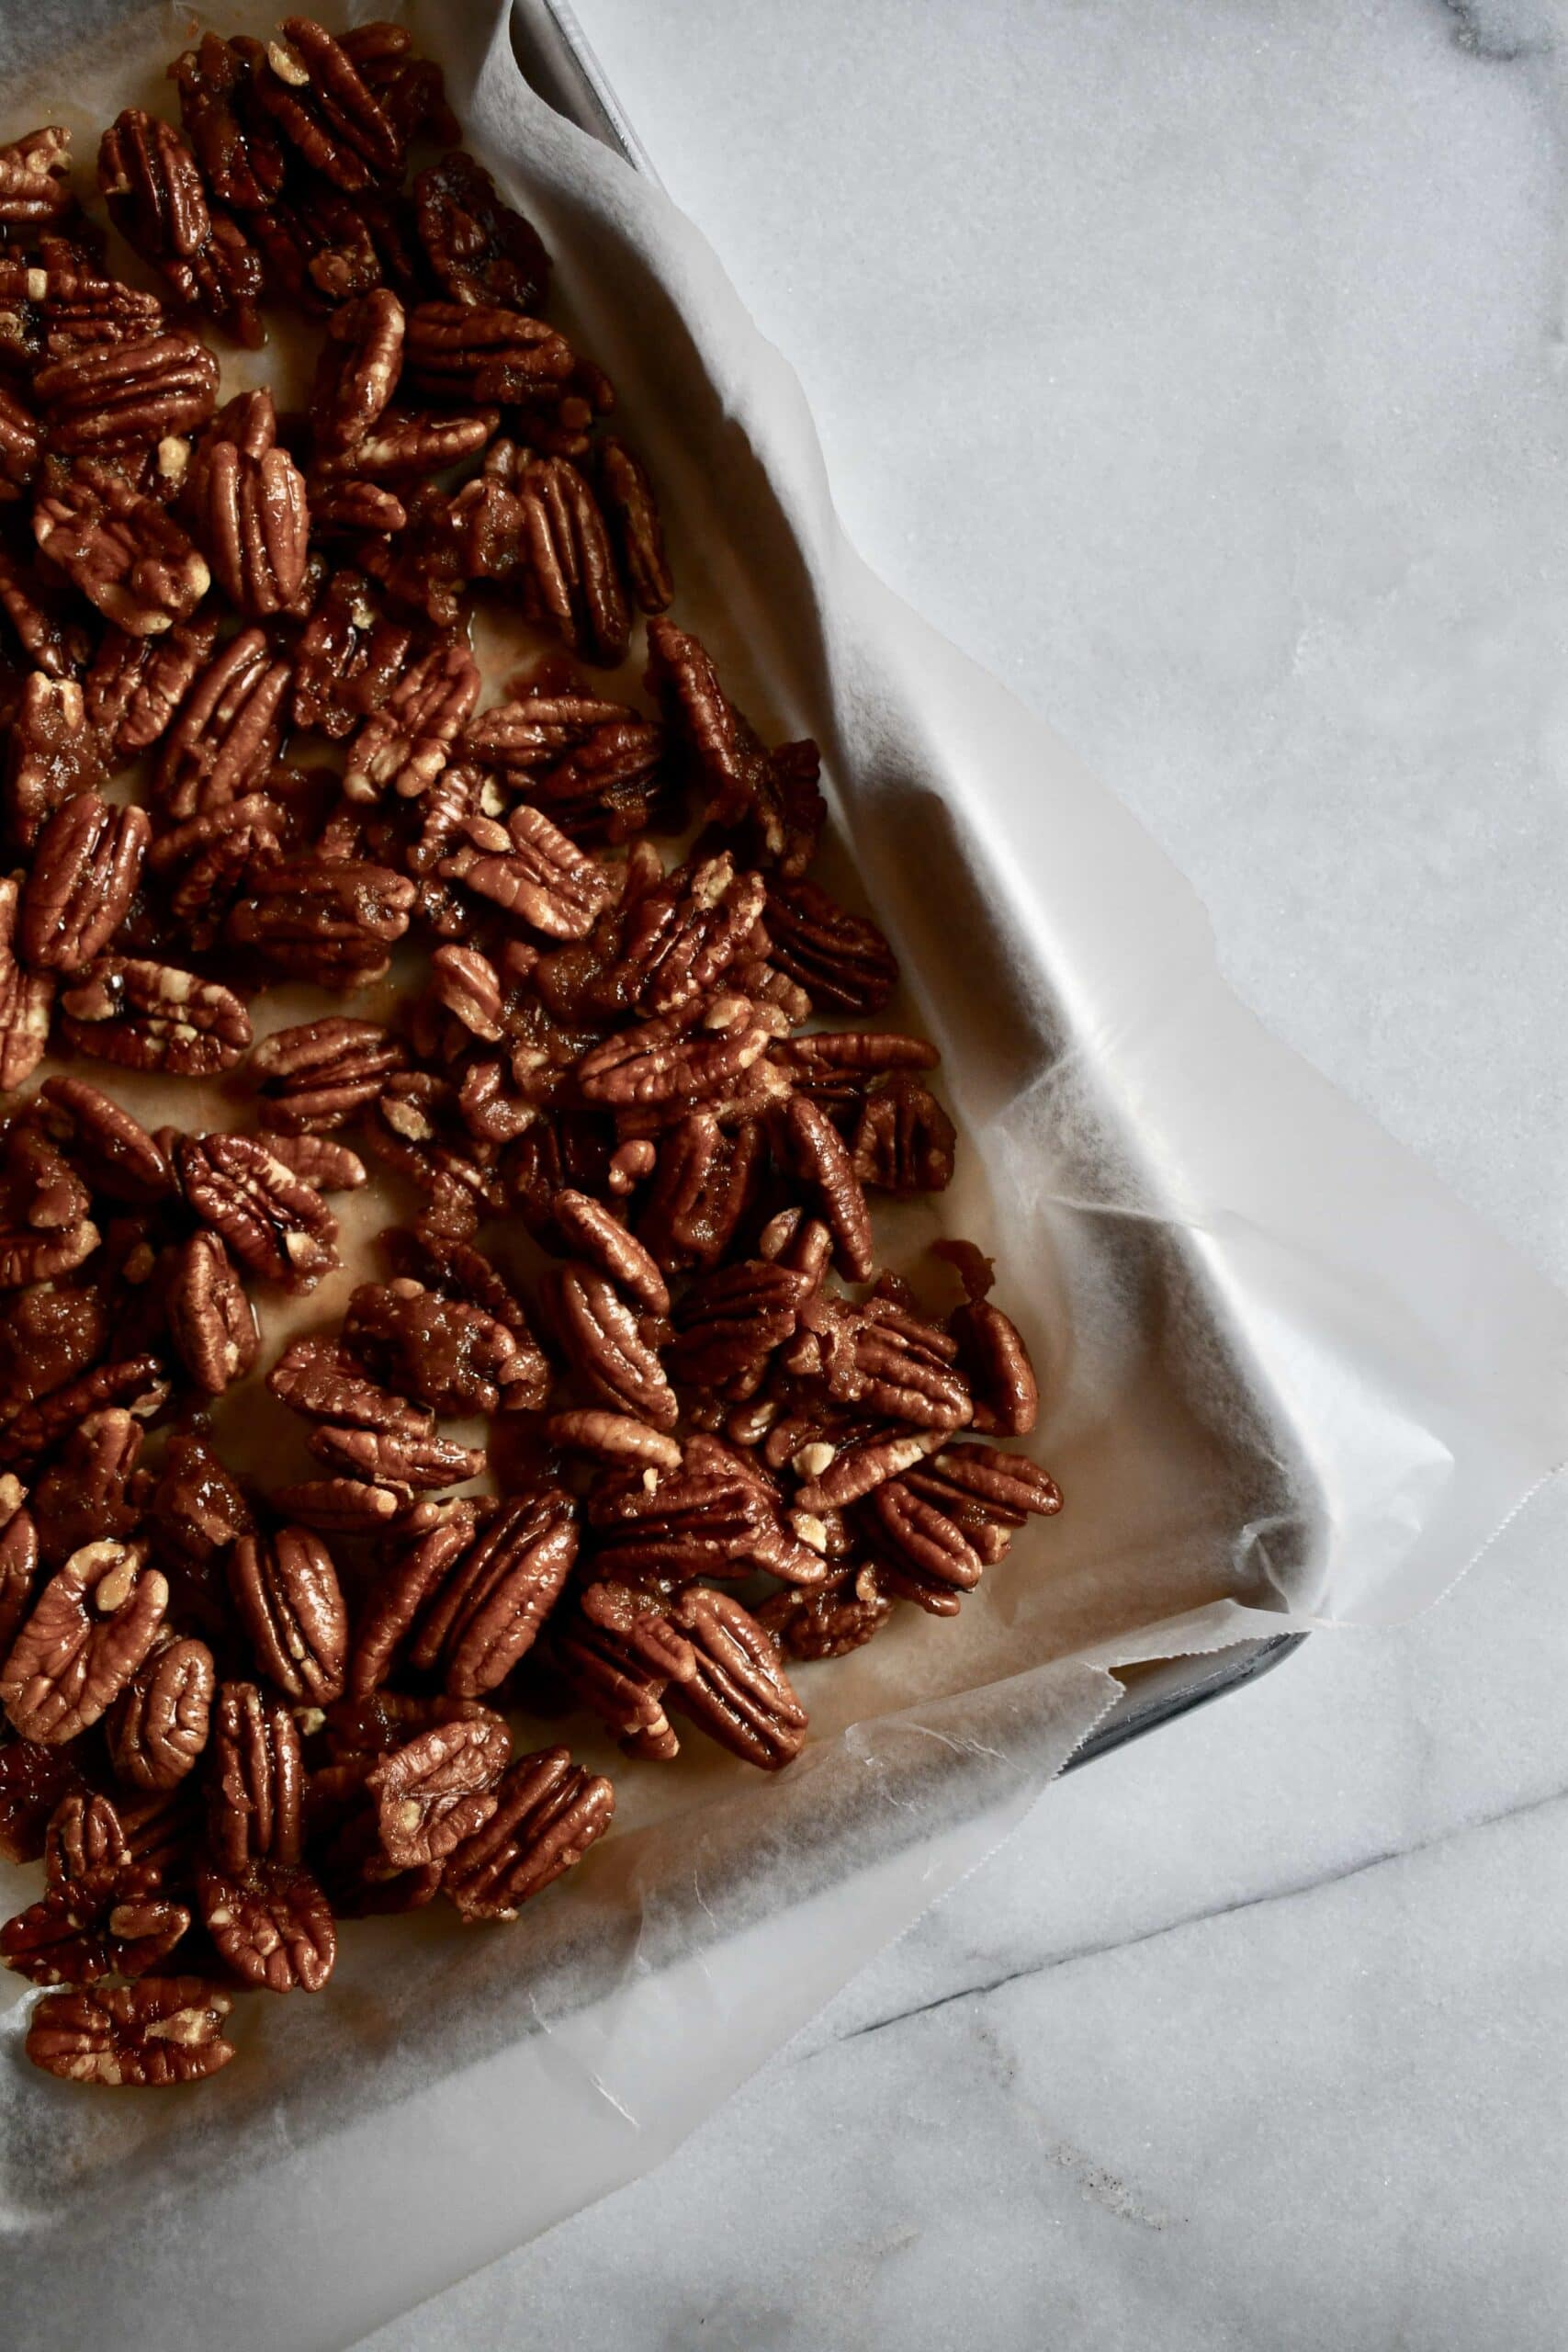 Joanna Gaines Buttered Walnuts or Pecans prepared by KendellKreations.com